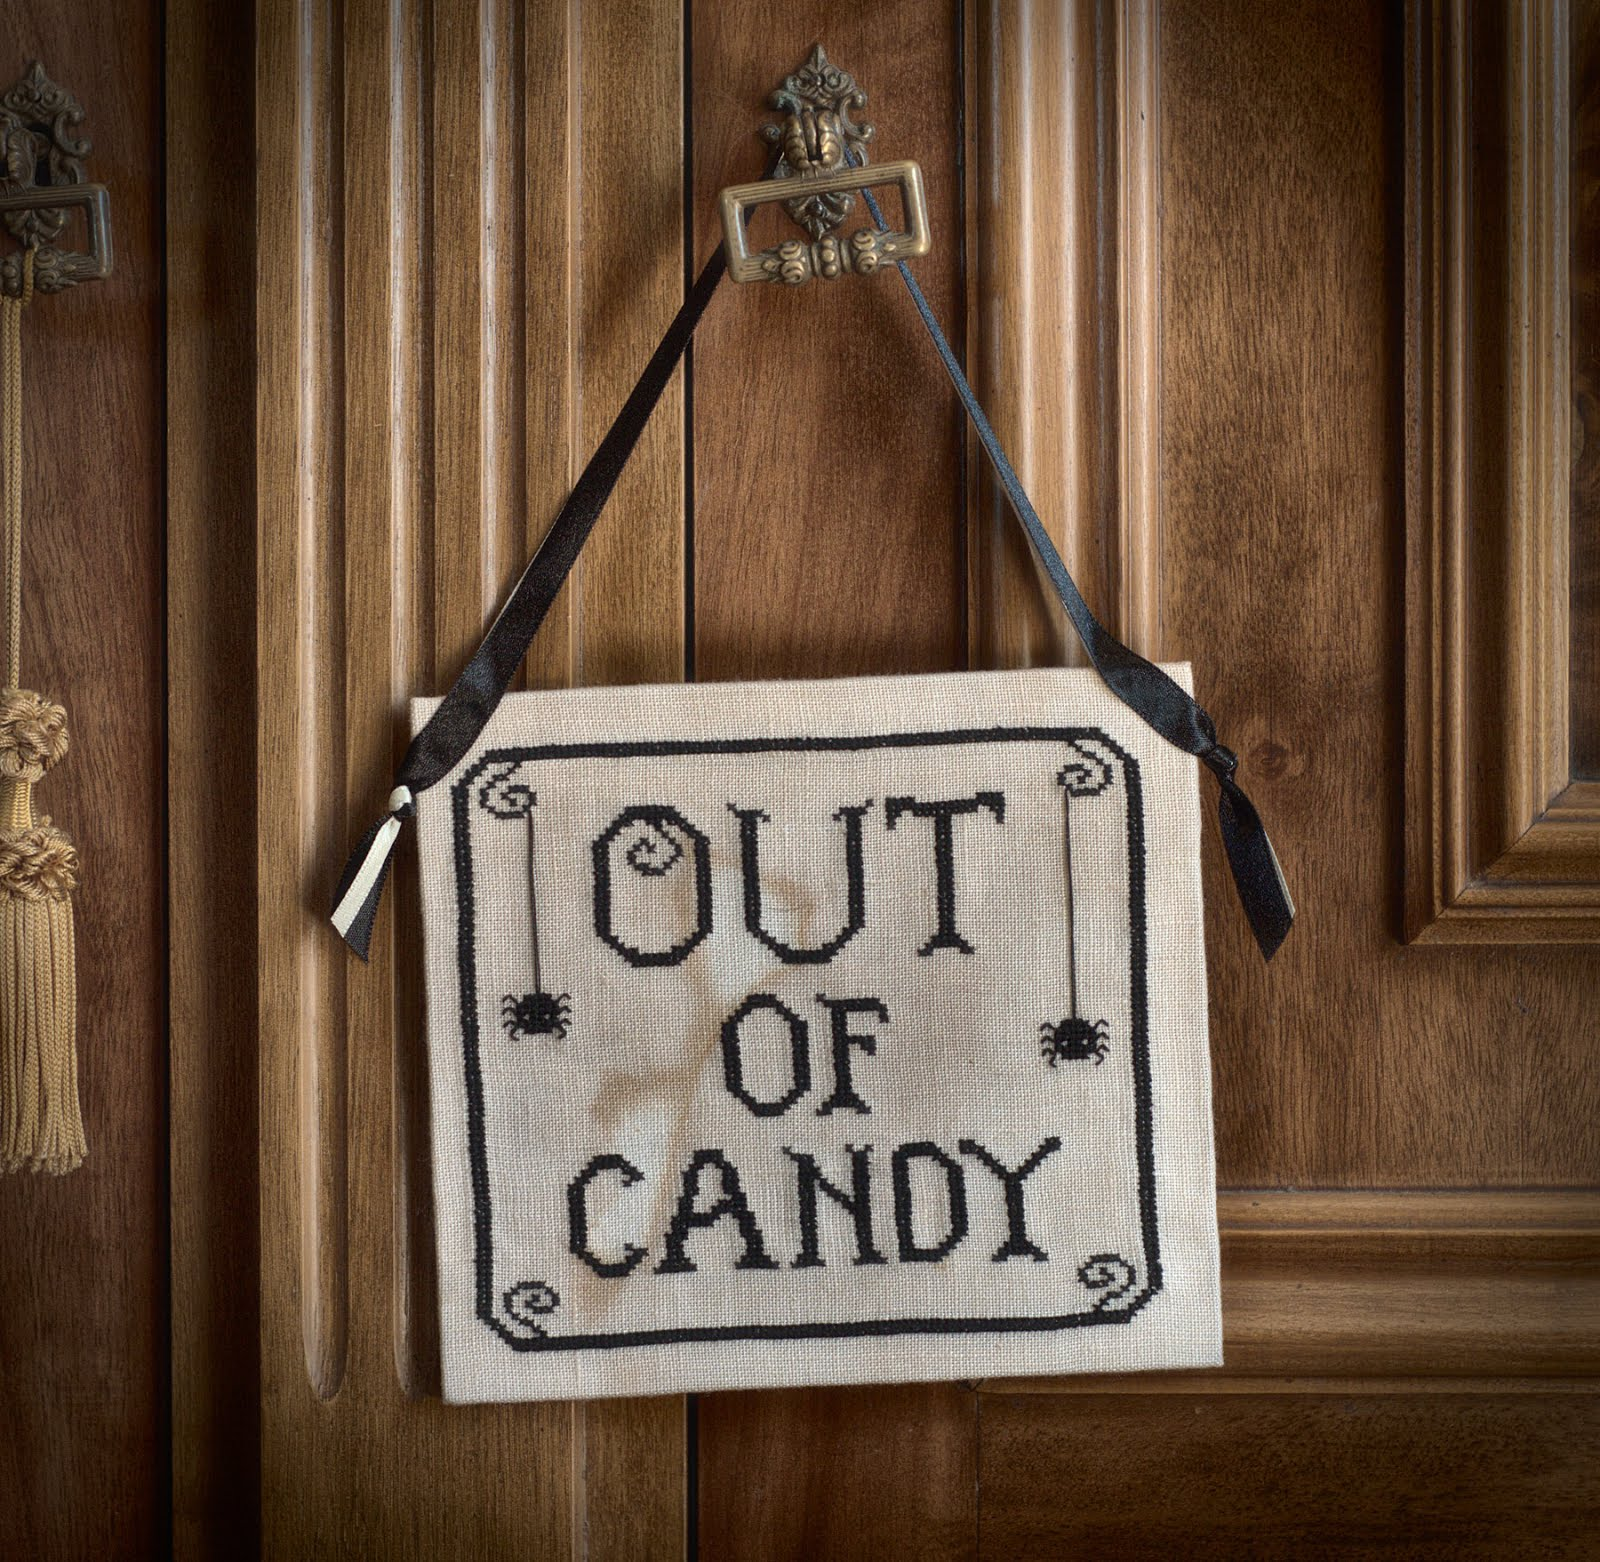 Out of Candy!